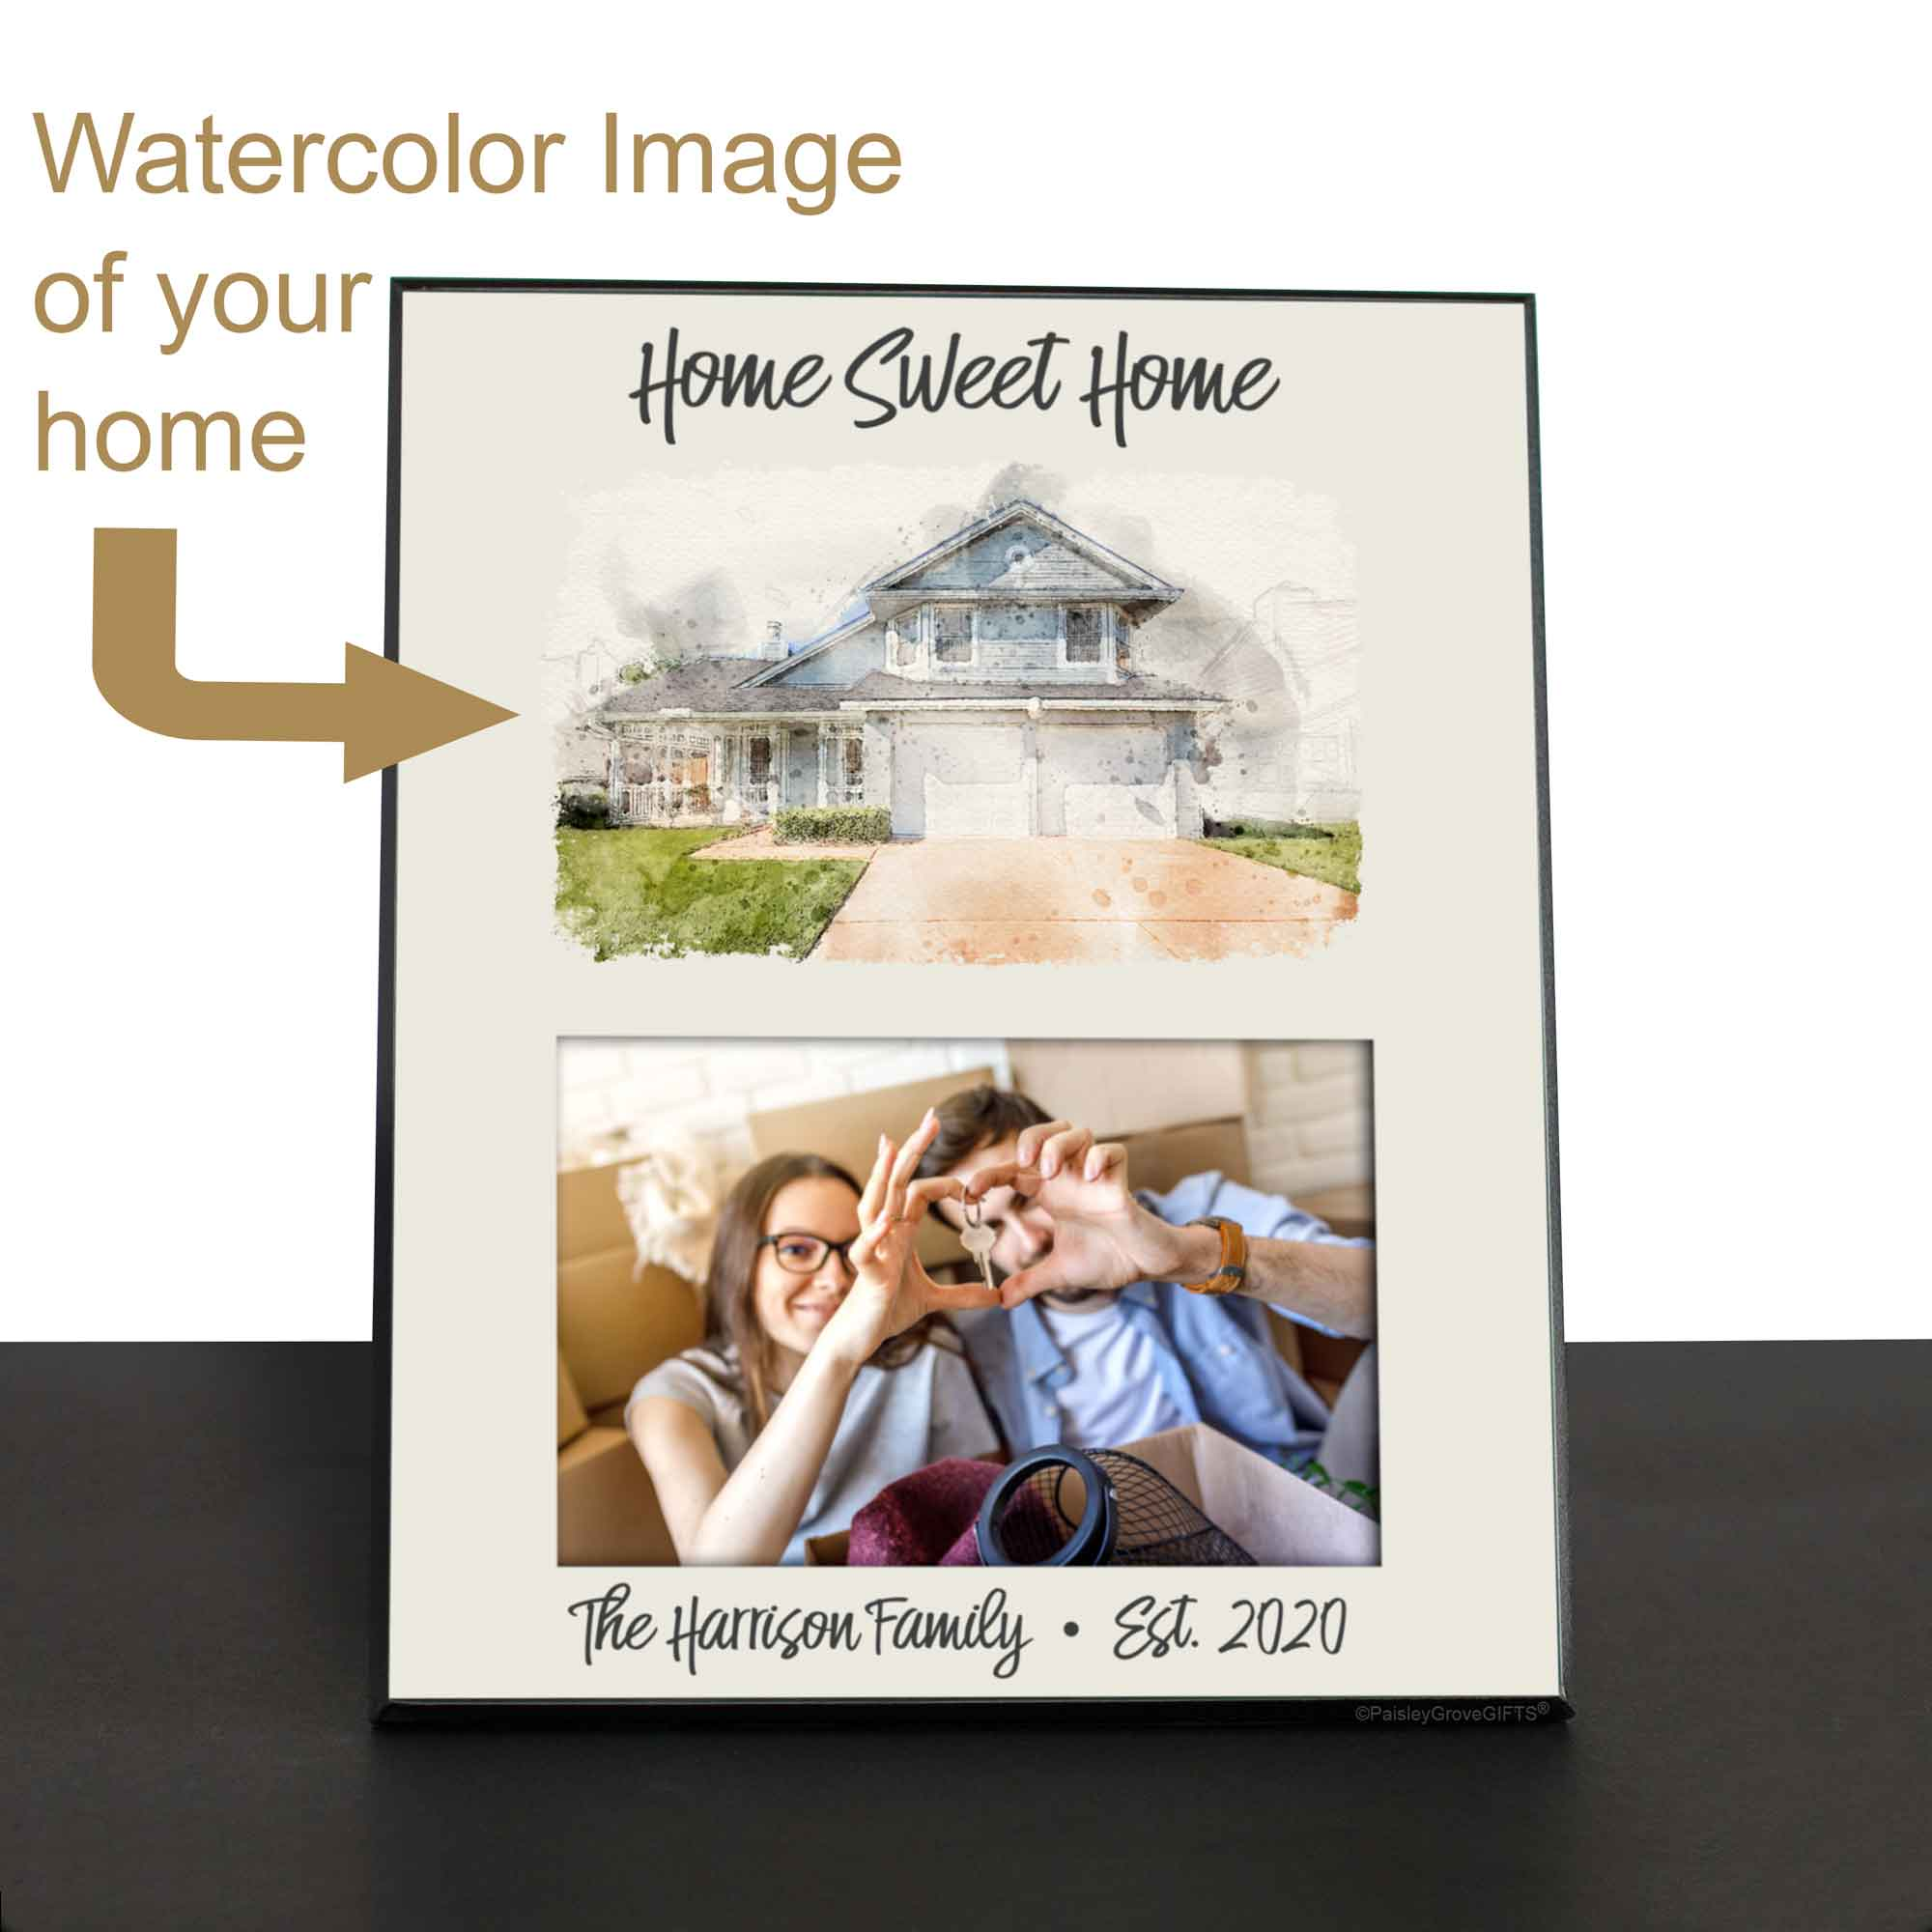 CopyrightPaisleyGroveGIFTS S250b Custom Watercolor Home Painting on Frame for New Home Gift, Add 4x6 photo of homeowners